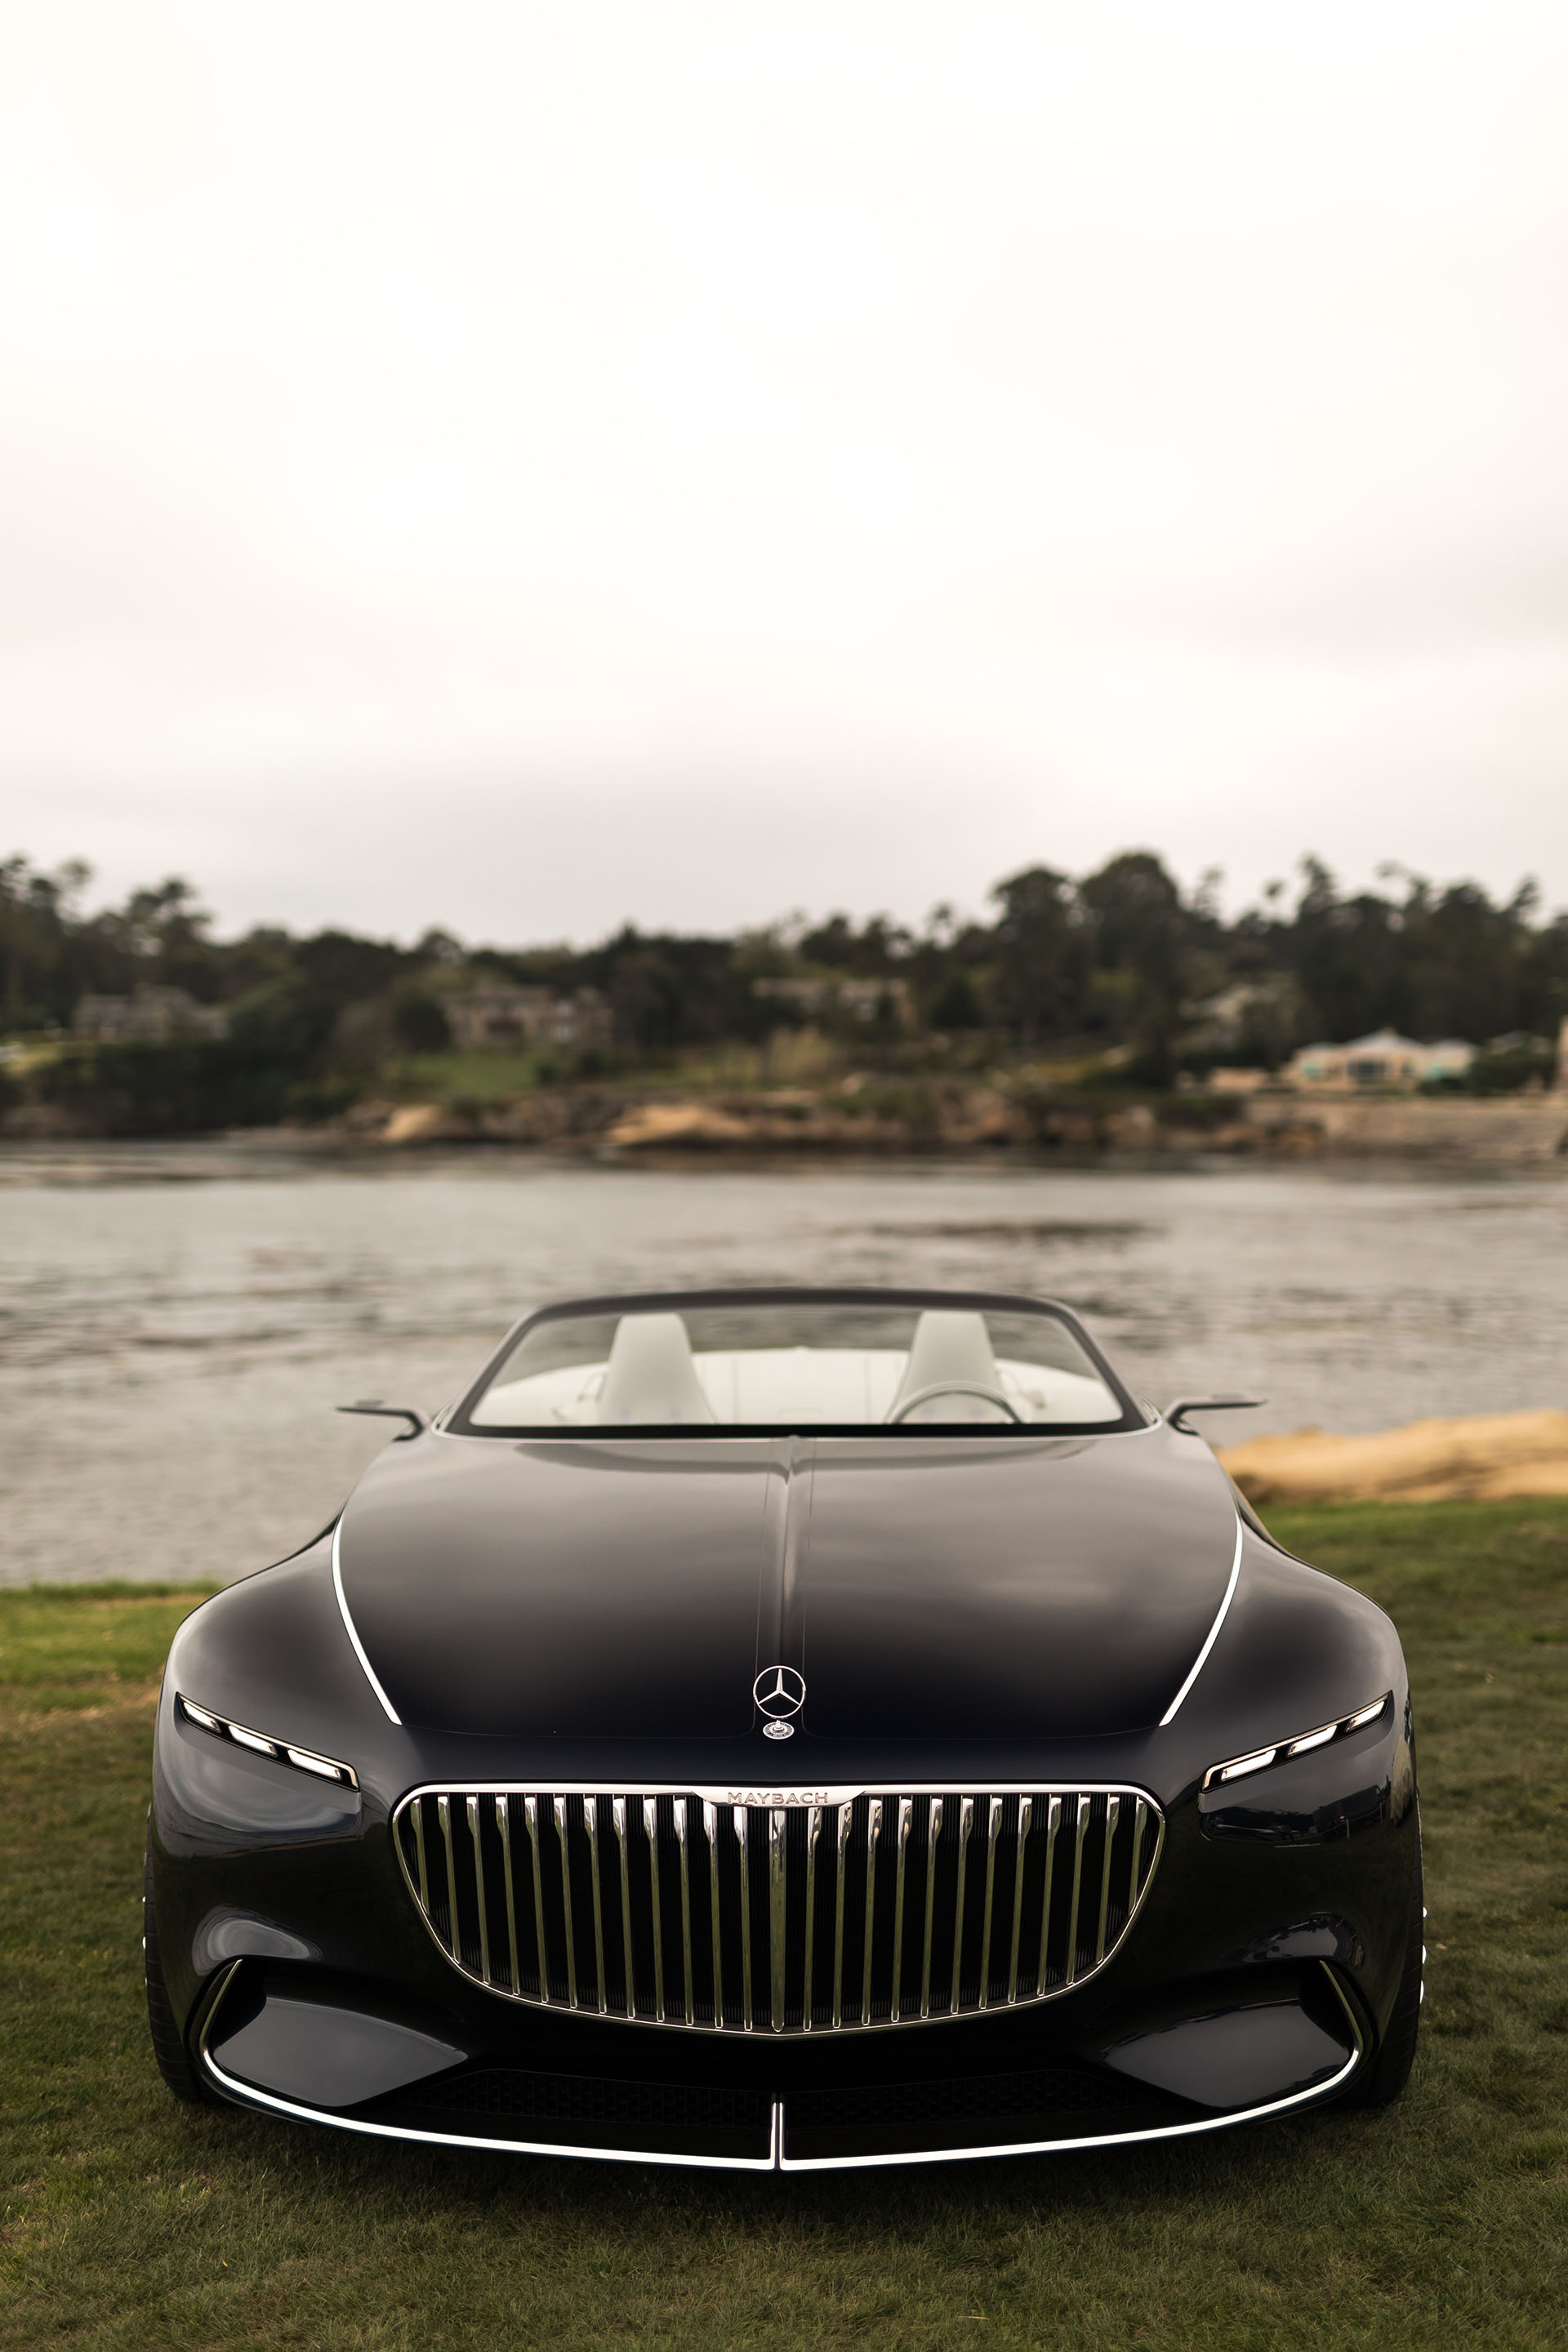 Mercedes Long Beach >> 2017 Monterey: The Vision Mercedes-Maybach 6 Cabriolet ...